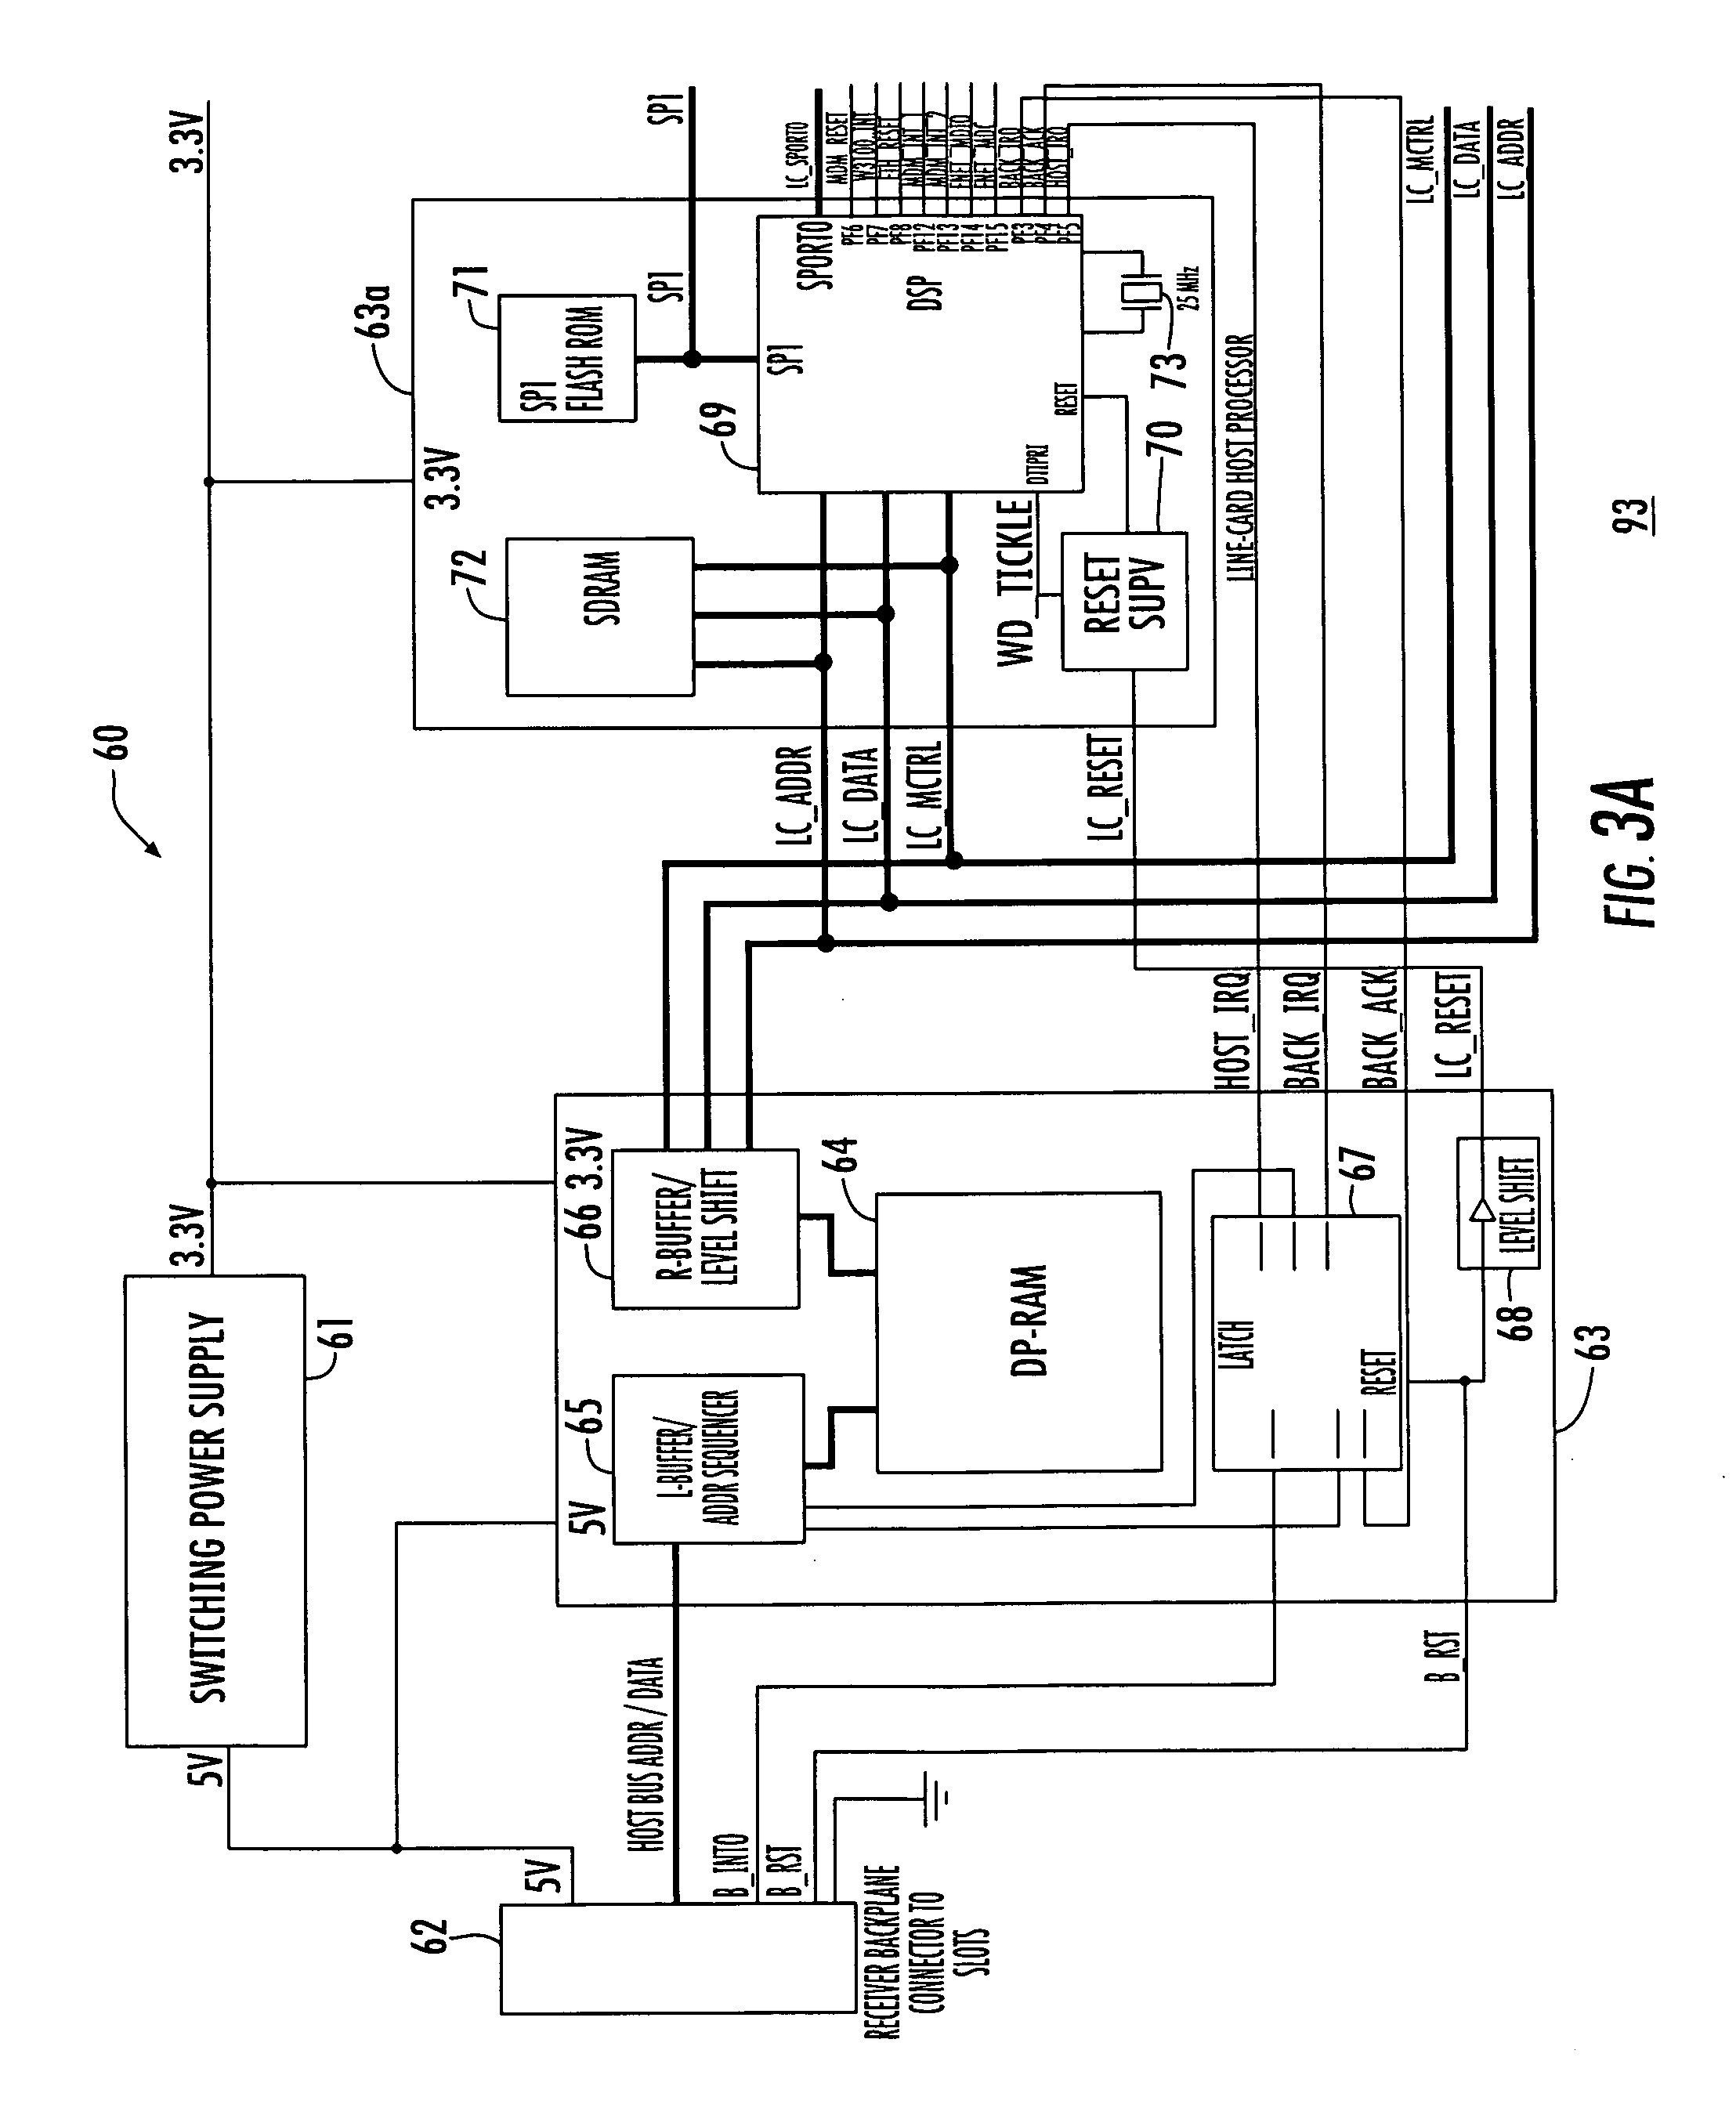 hight resolution of fire alarm control module wiring diagram